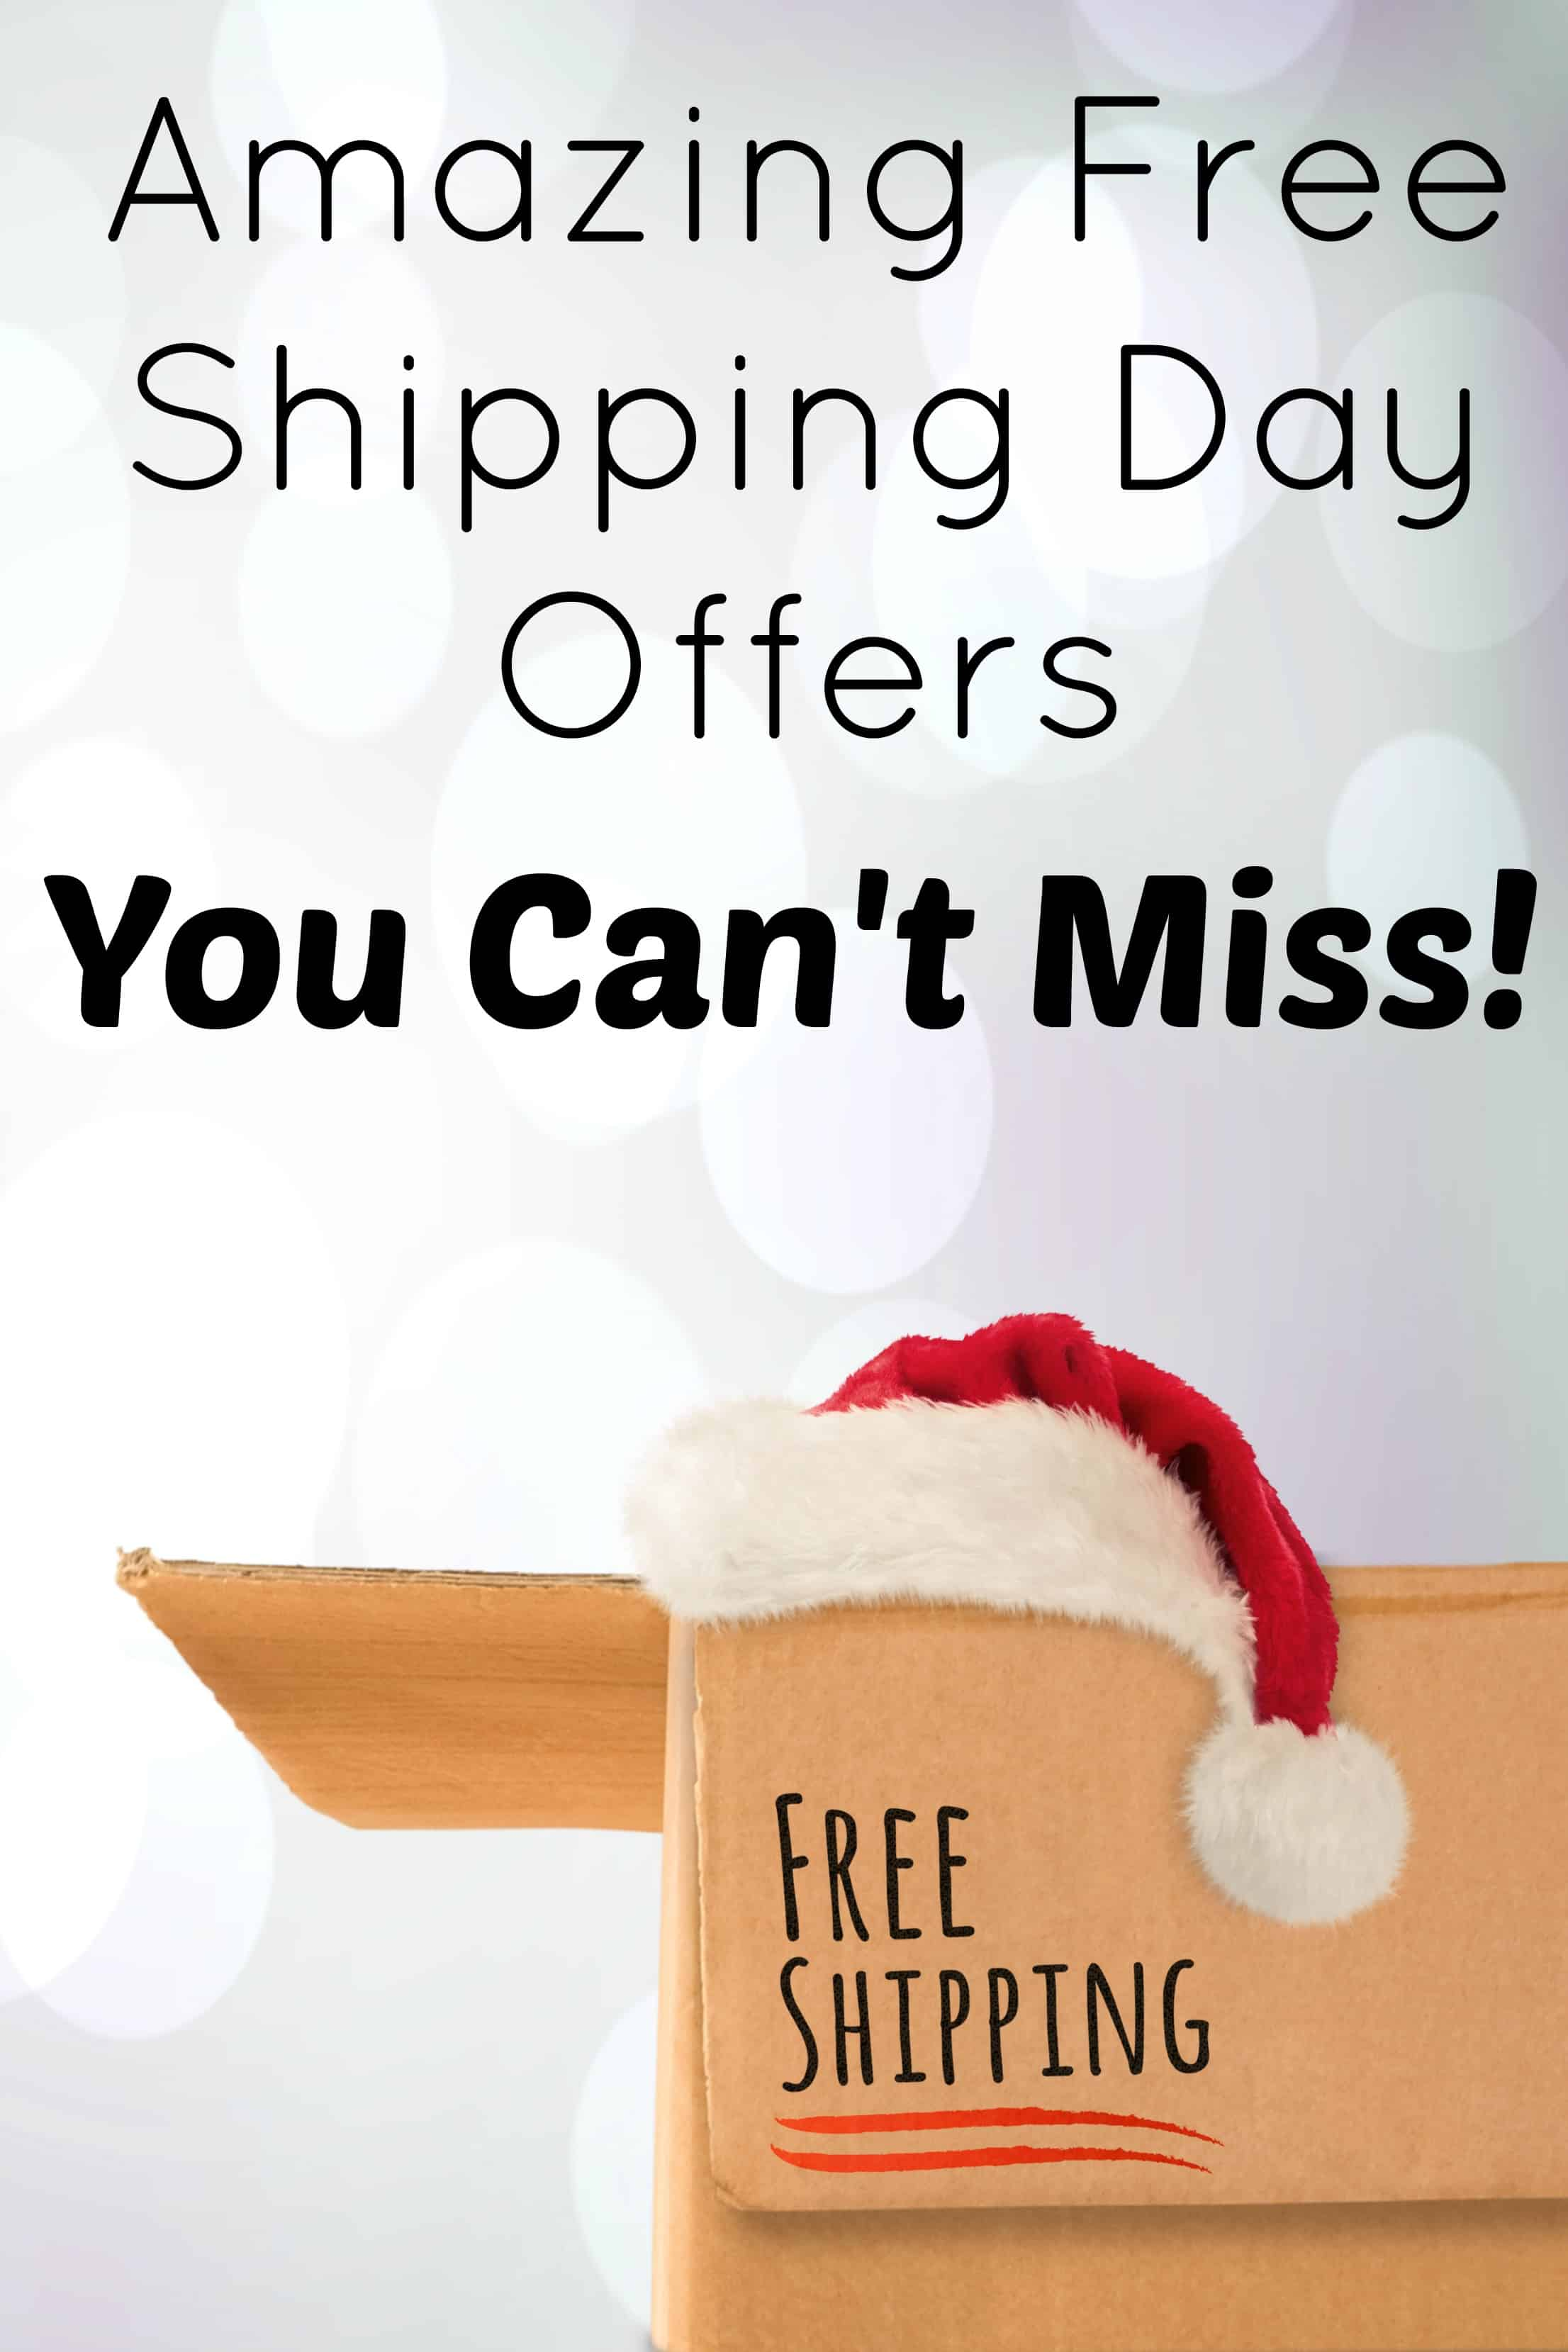 Free Shipping Day 2016 Offers